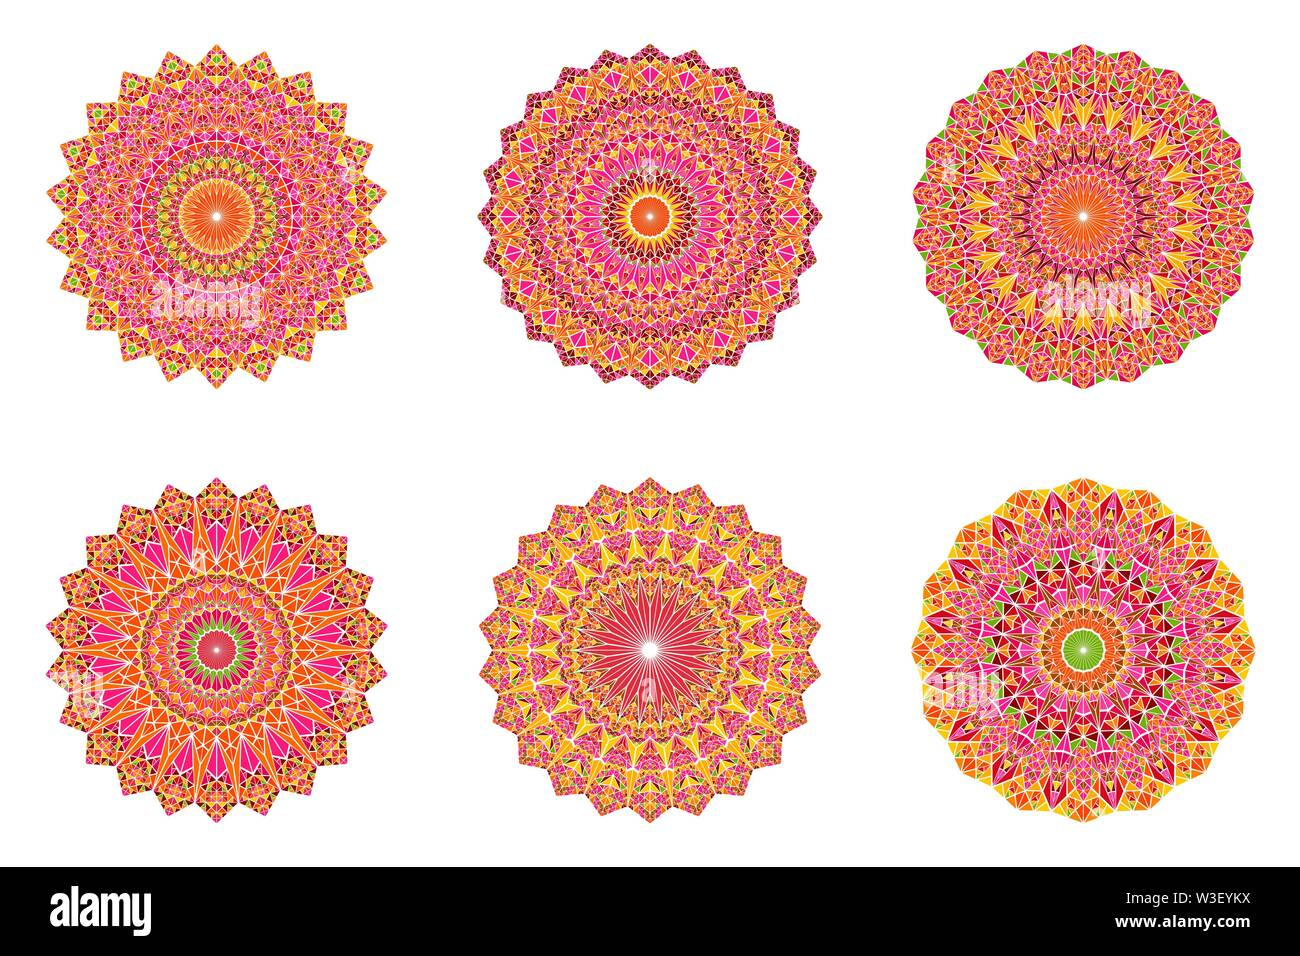 Ornate geometrical triangle mosaic mandala set - circular polygonal abstract round vector graphic on background - Stock Image